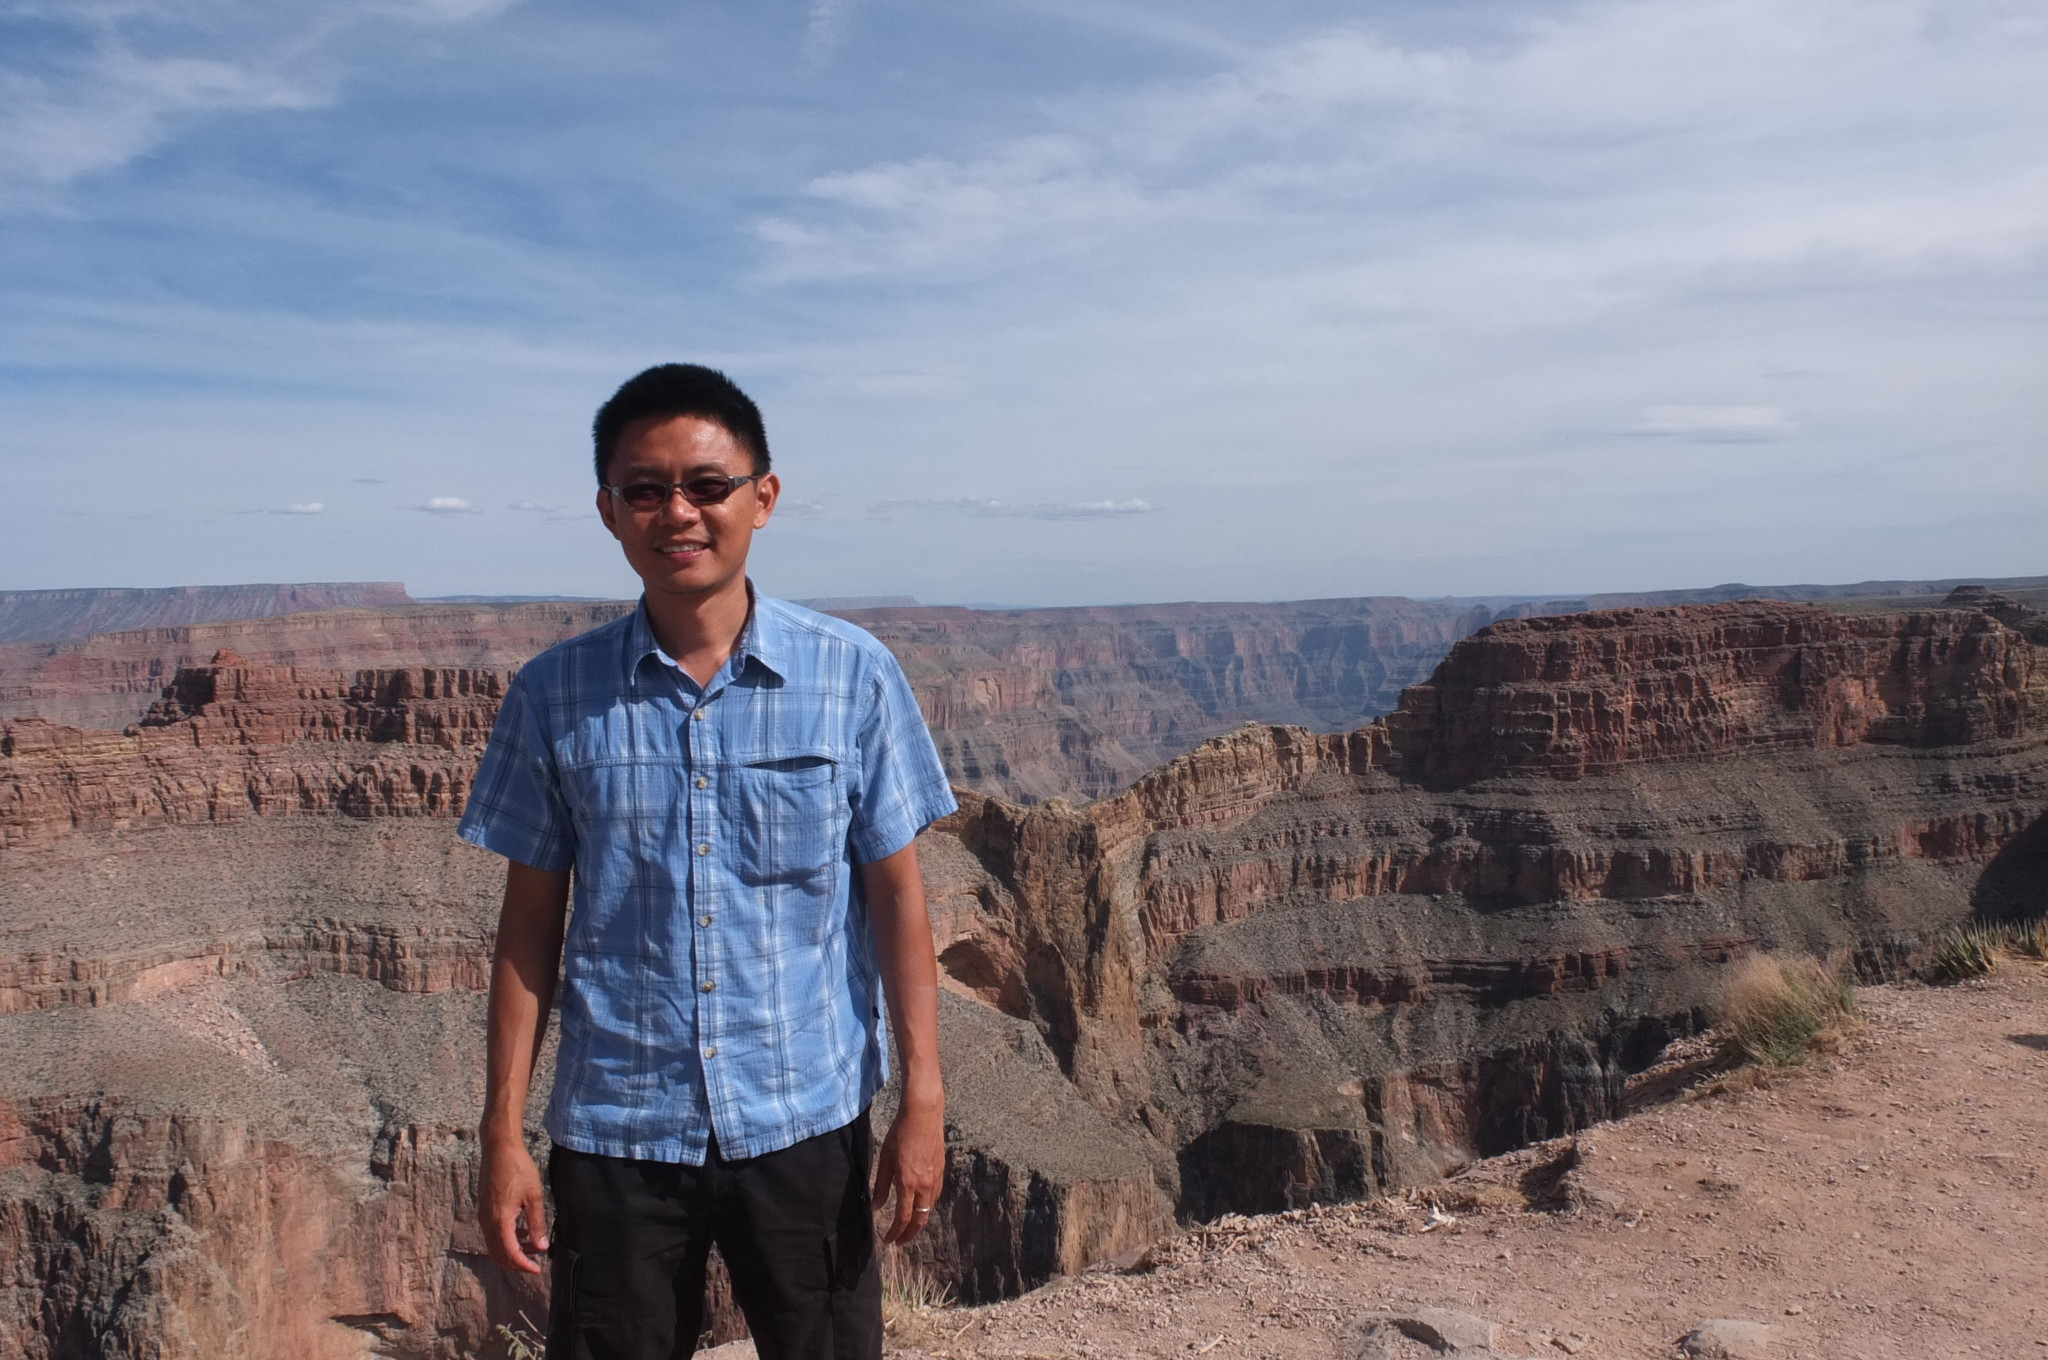 Eagle point (background) in west rim of Grand Canyon